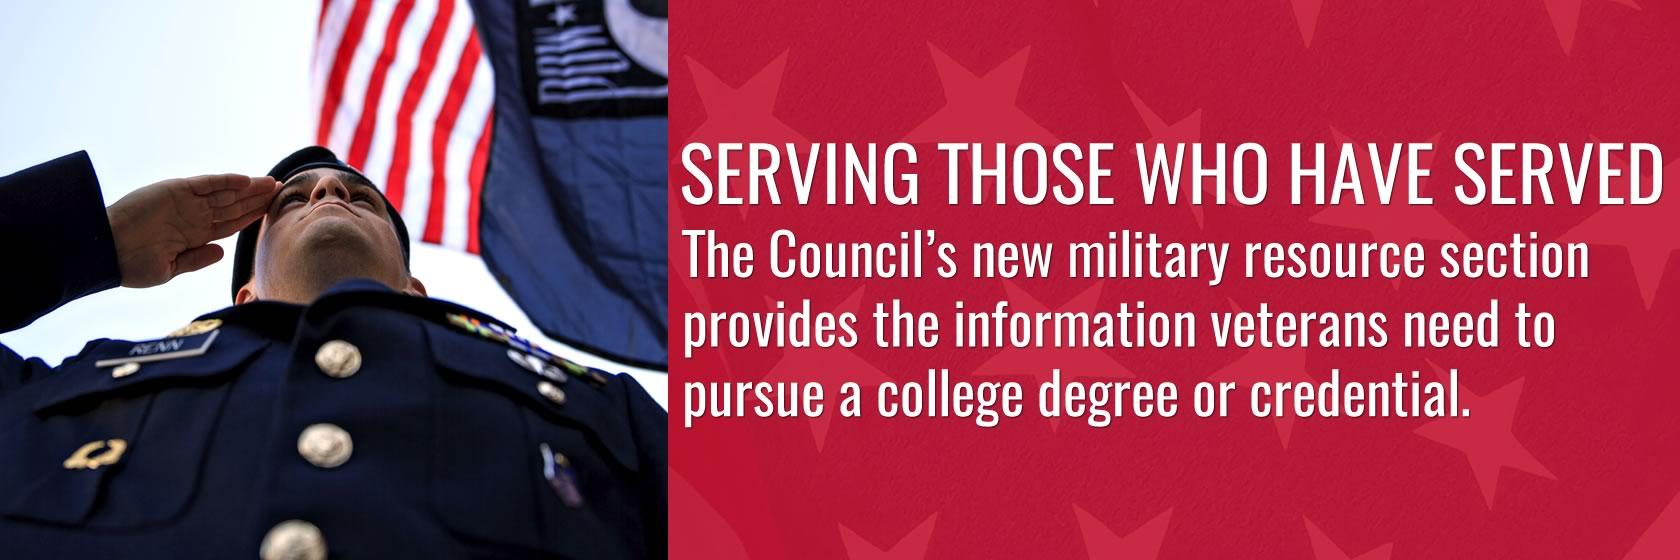 View CPE's new military resource section for veterans looking to get a degree or credential.